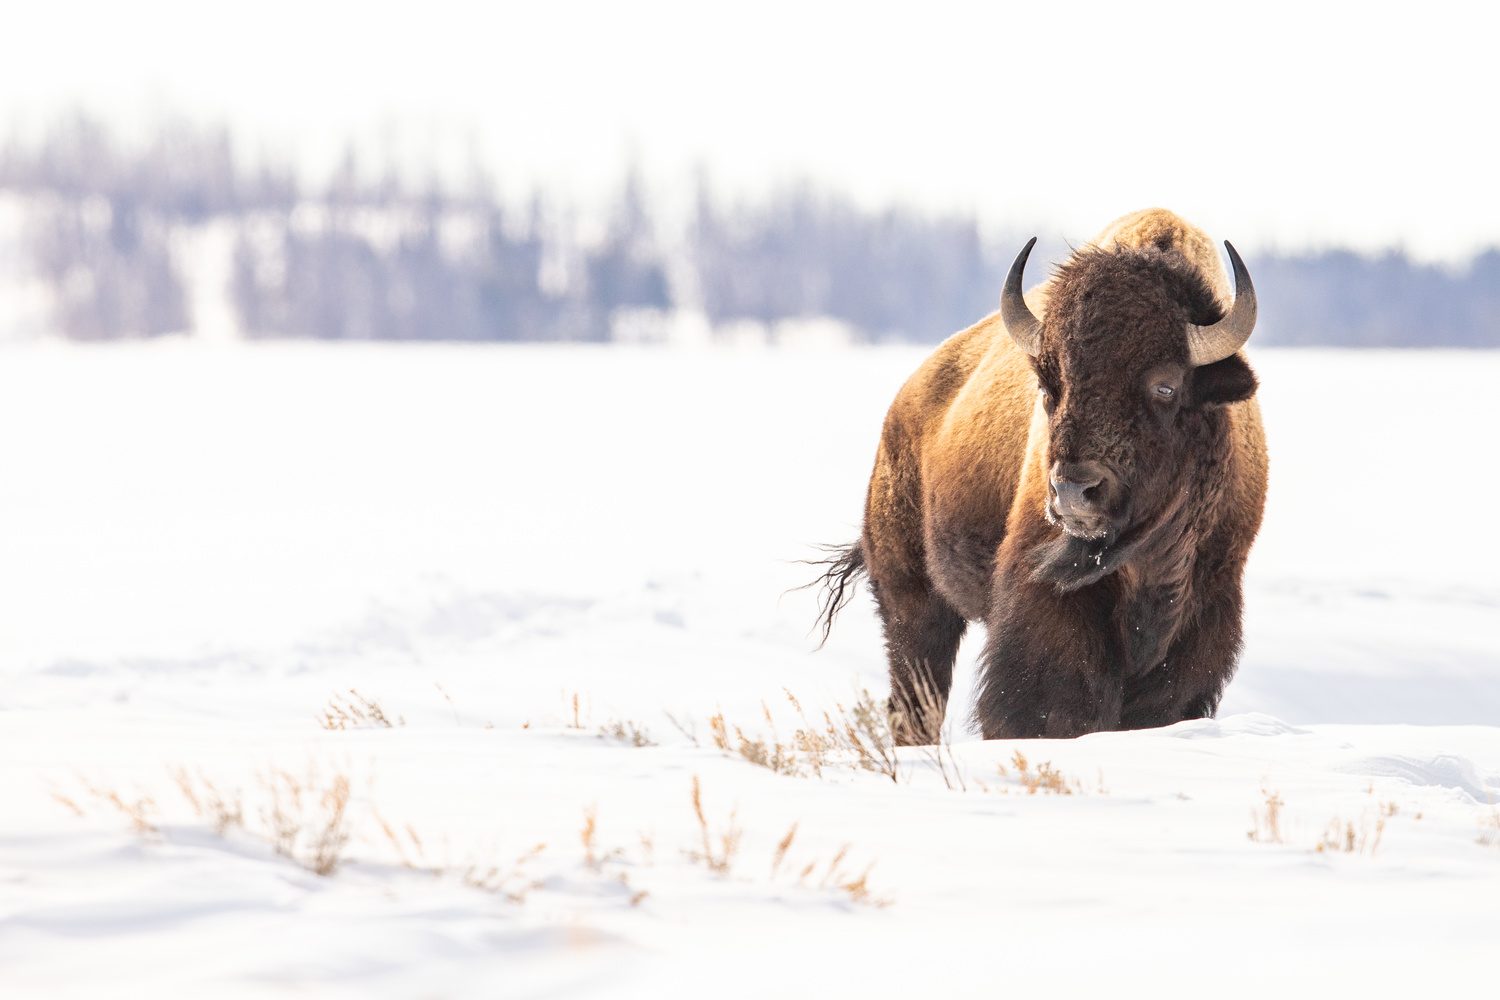 Bison in the Wind by Kyle Rohlfing